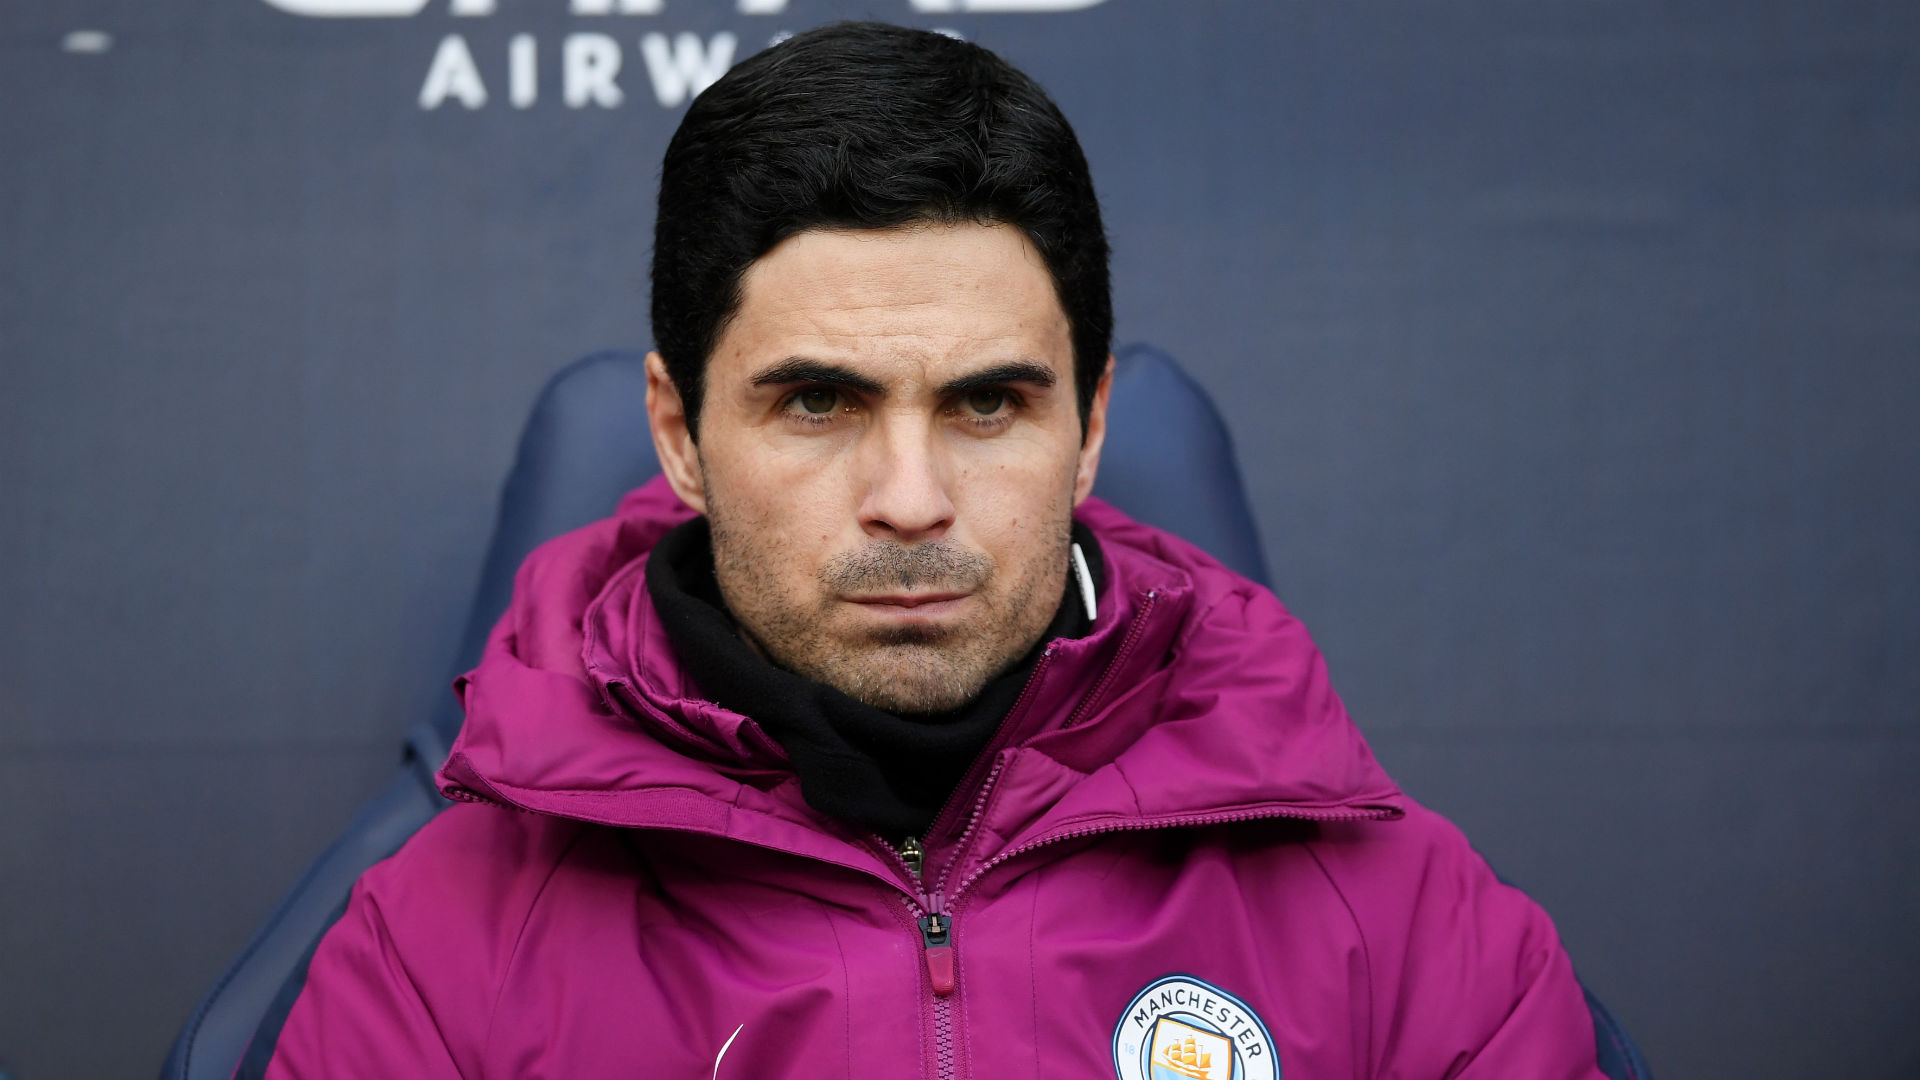 Mikel Arteta may replace Arsene Wenger